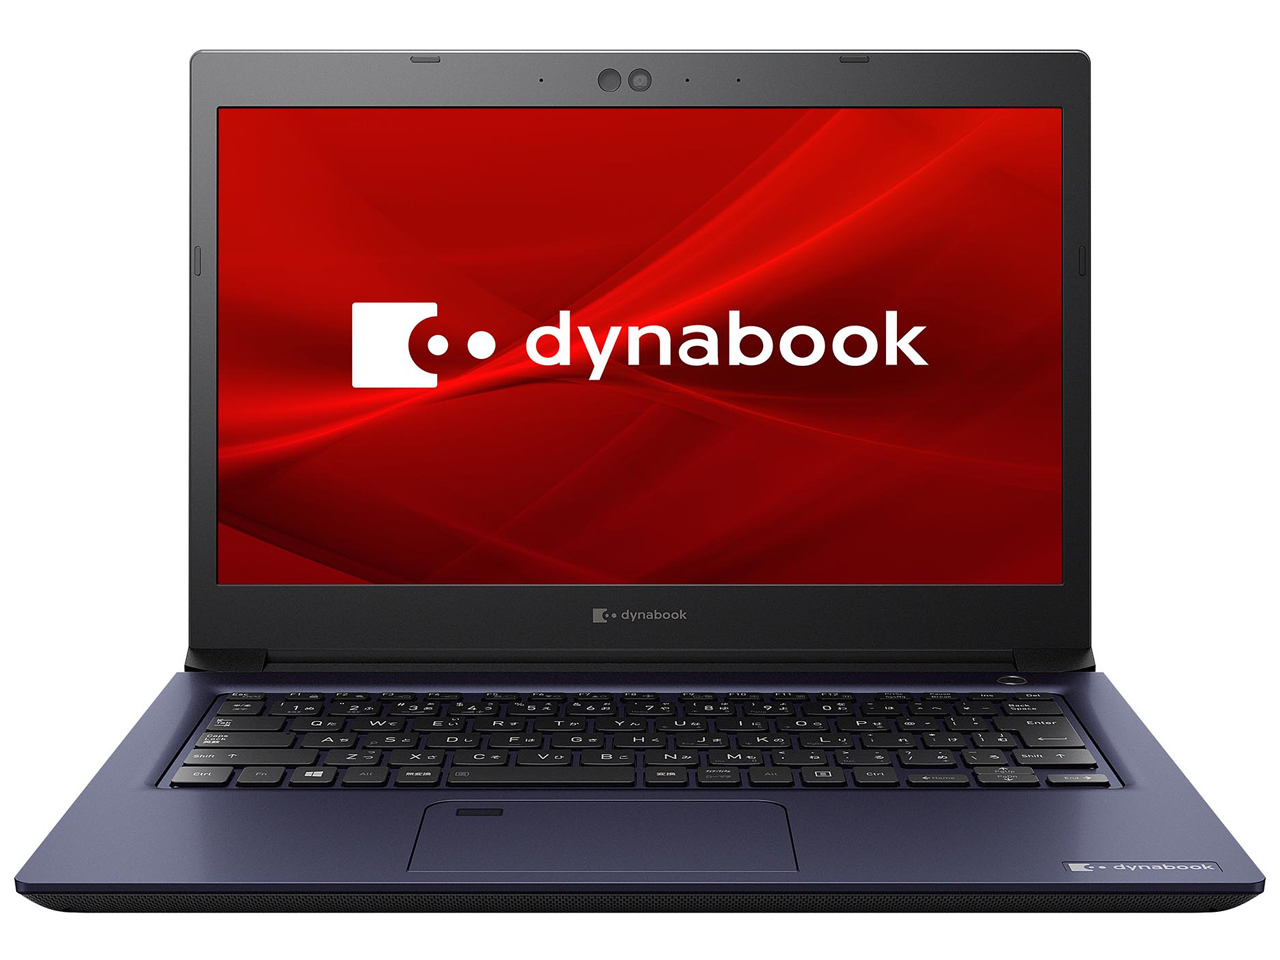 dynabook S6 2019年秋モデル